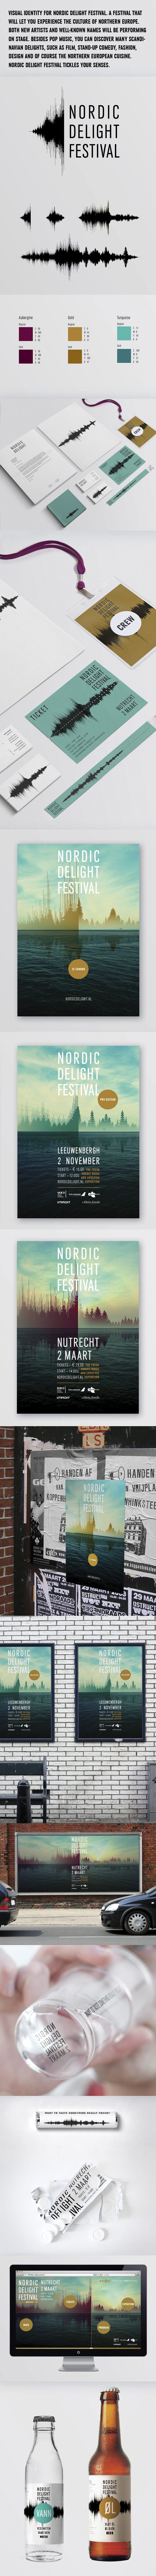 Nordic Delight Festival identity by CLEVER°FRANKE - Data visualization , via Behance